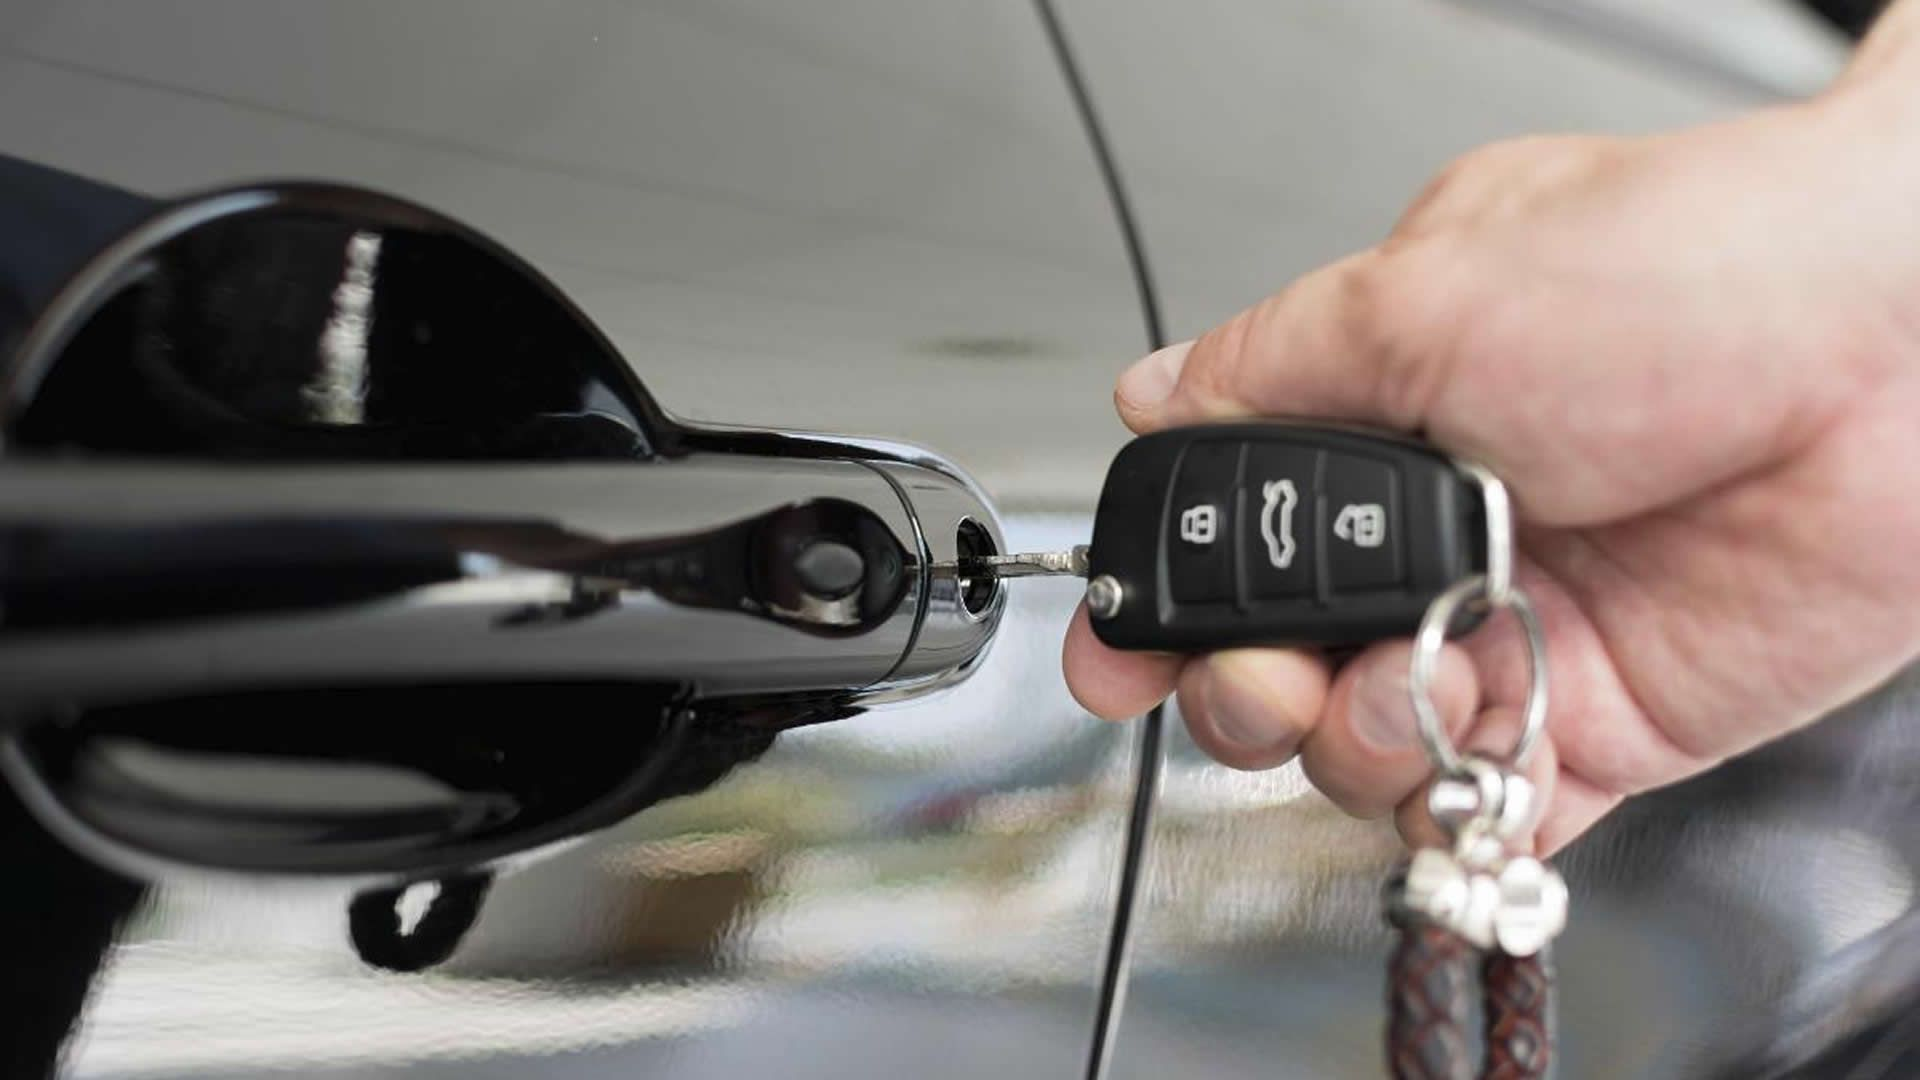 Know More About Locksmith Service